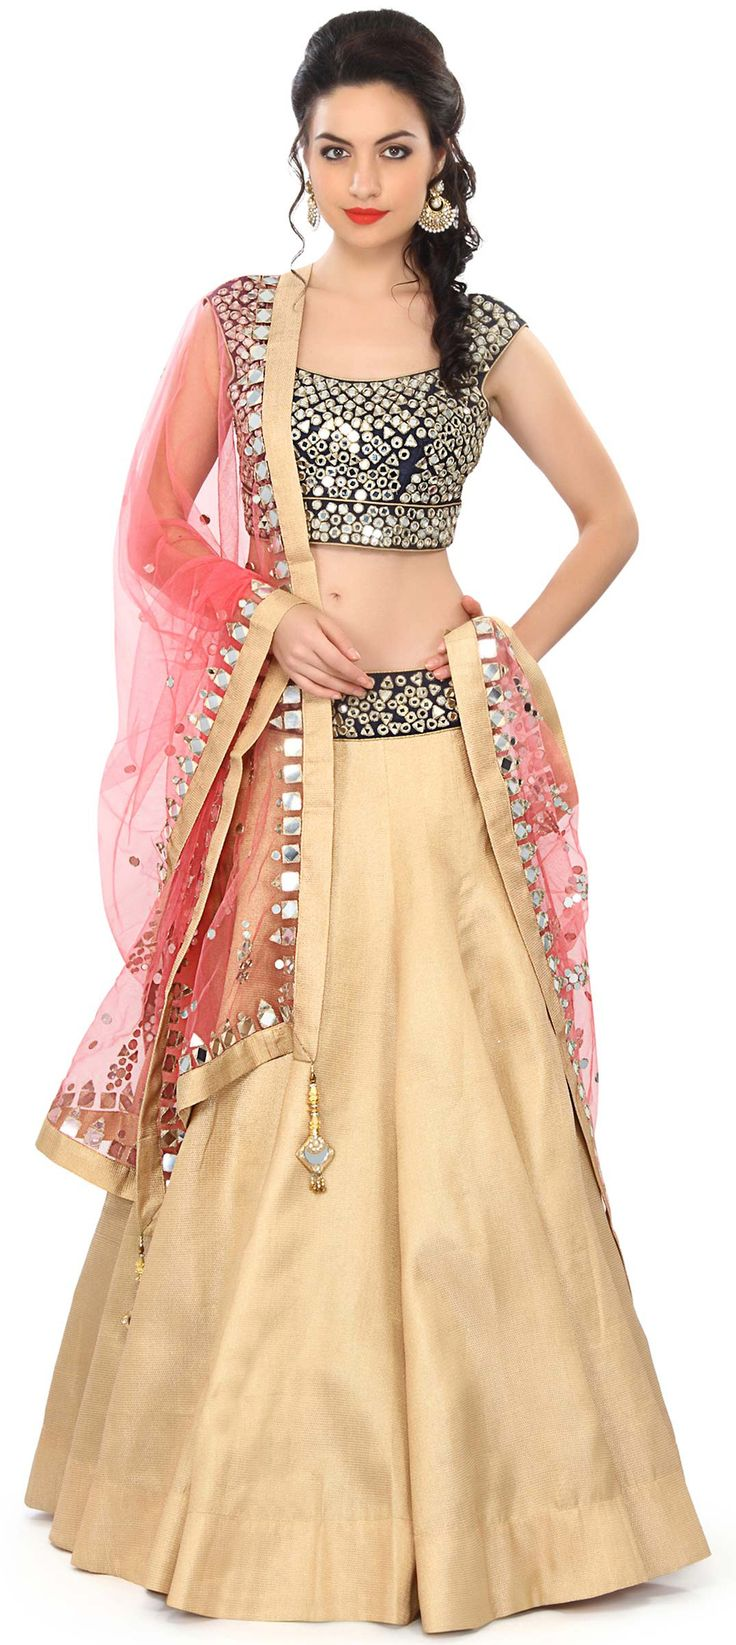 Buy Online from the link below. We ship worldwide (Free Shipping over US$100) Price - $379.00 Click Anywhere to Tag  http://www.kalkifashion.com/gold-lehenga-embellished-in-mirror-and-zari-embroidery-only-on-kalki.html